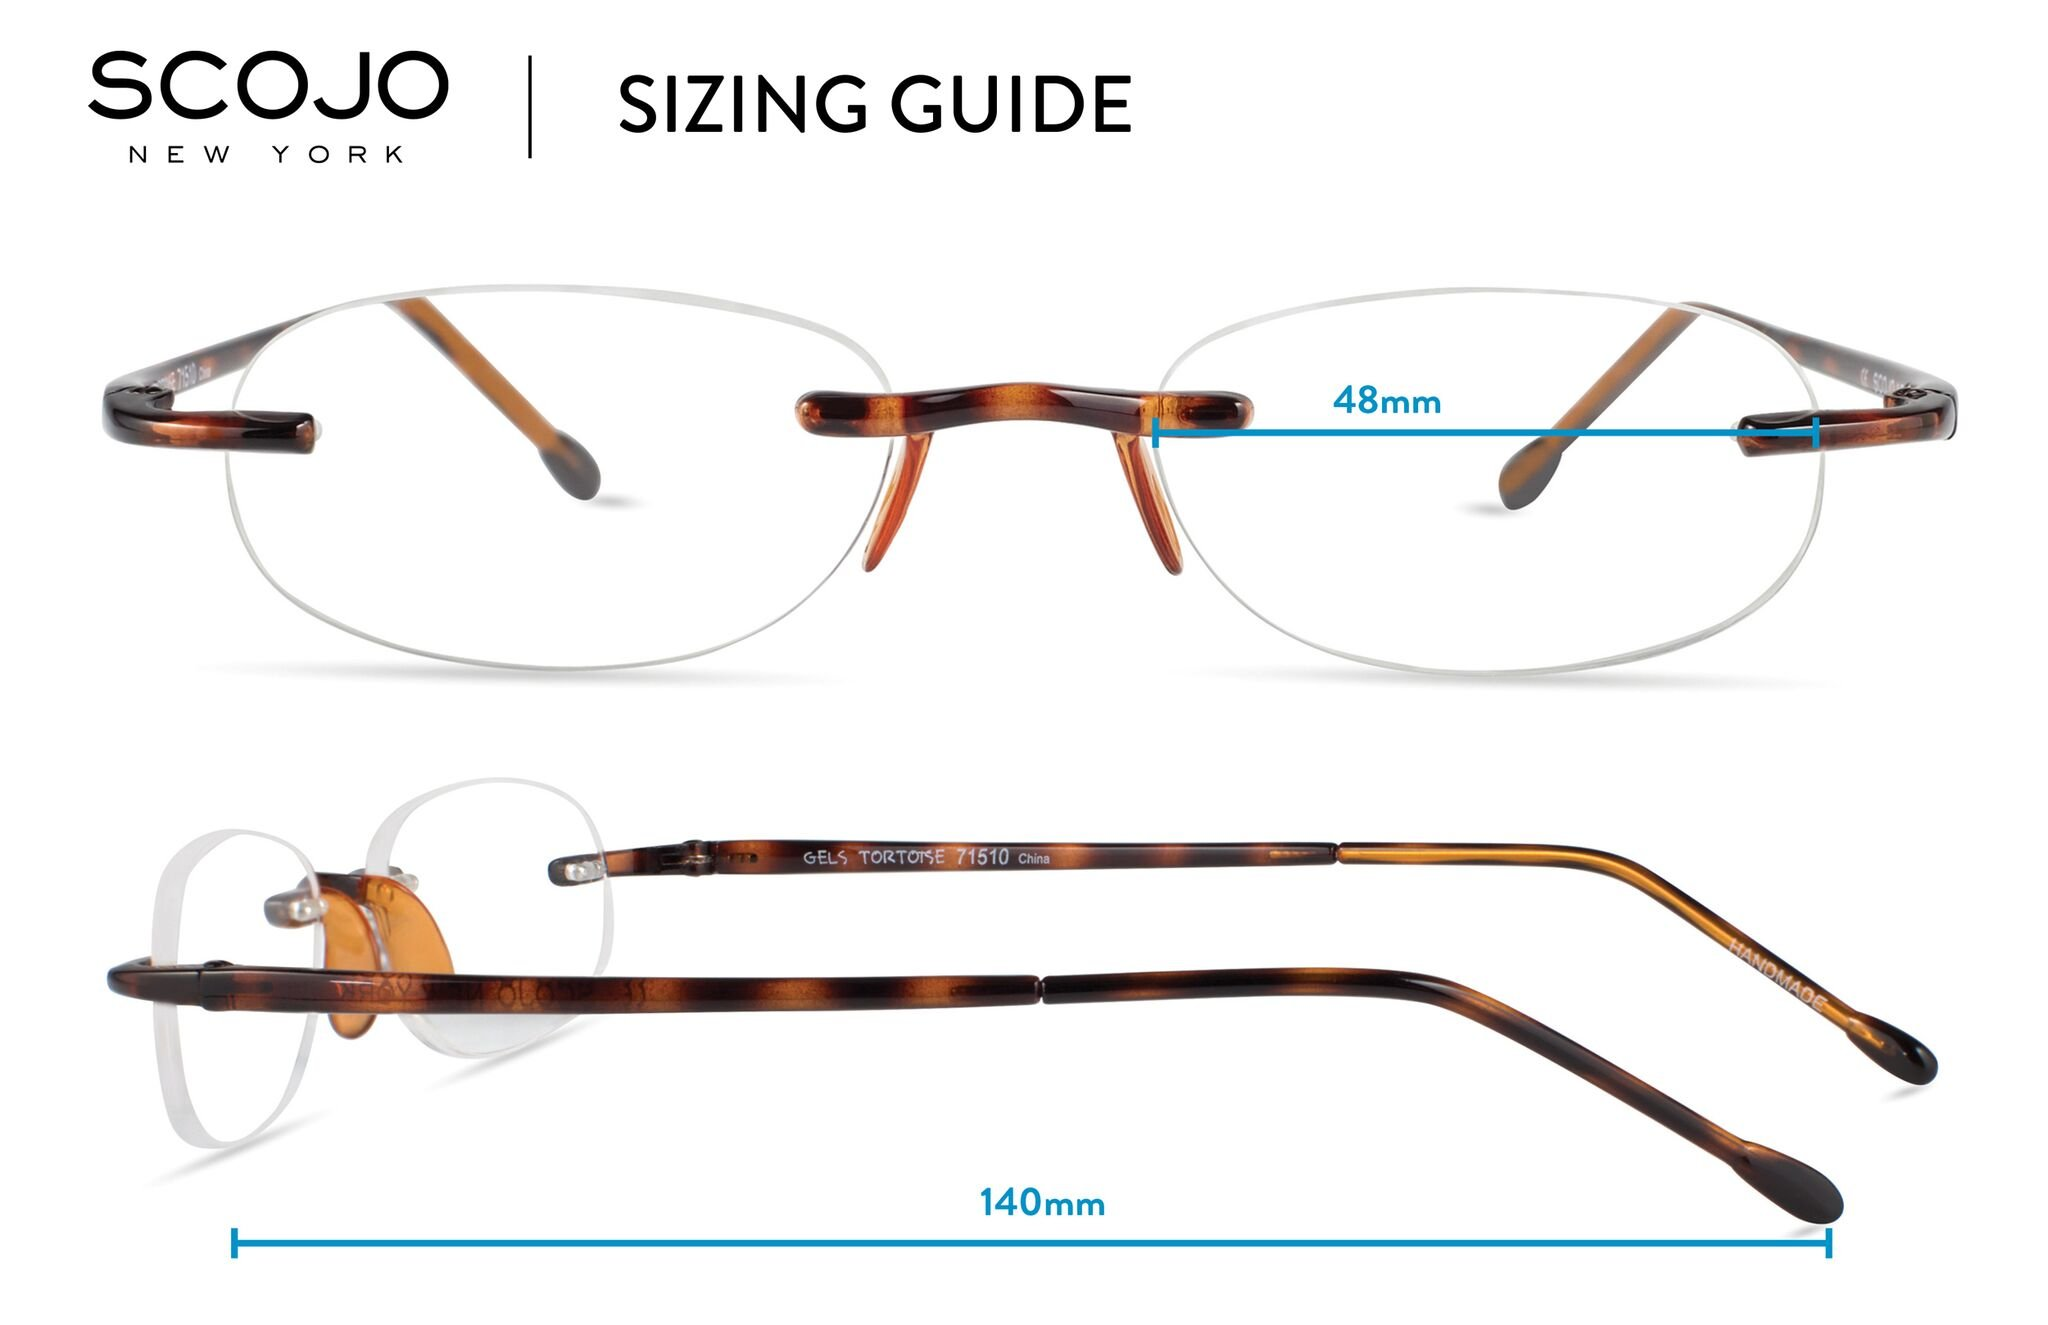 Gels - Lightweight Rimless Fashion Readers - The Original Reading Glasses for Men and Women - Tortoise (+1.50 Magnification Power) by Scojo New York (Image #5)